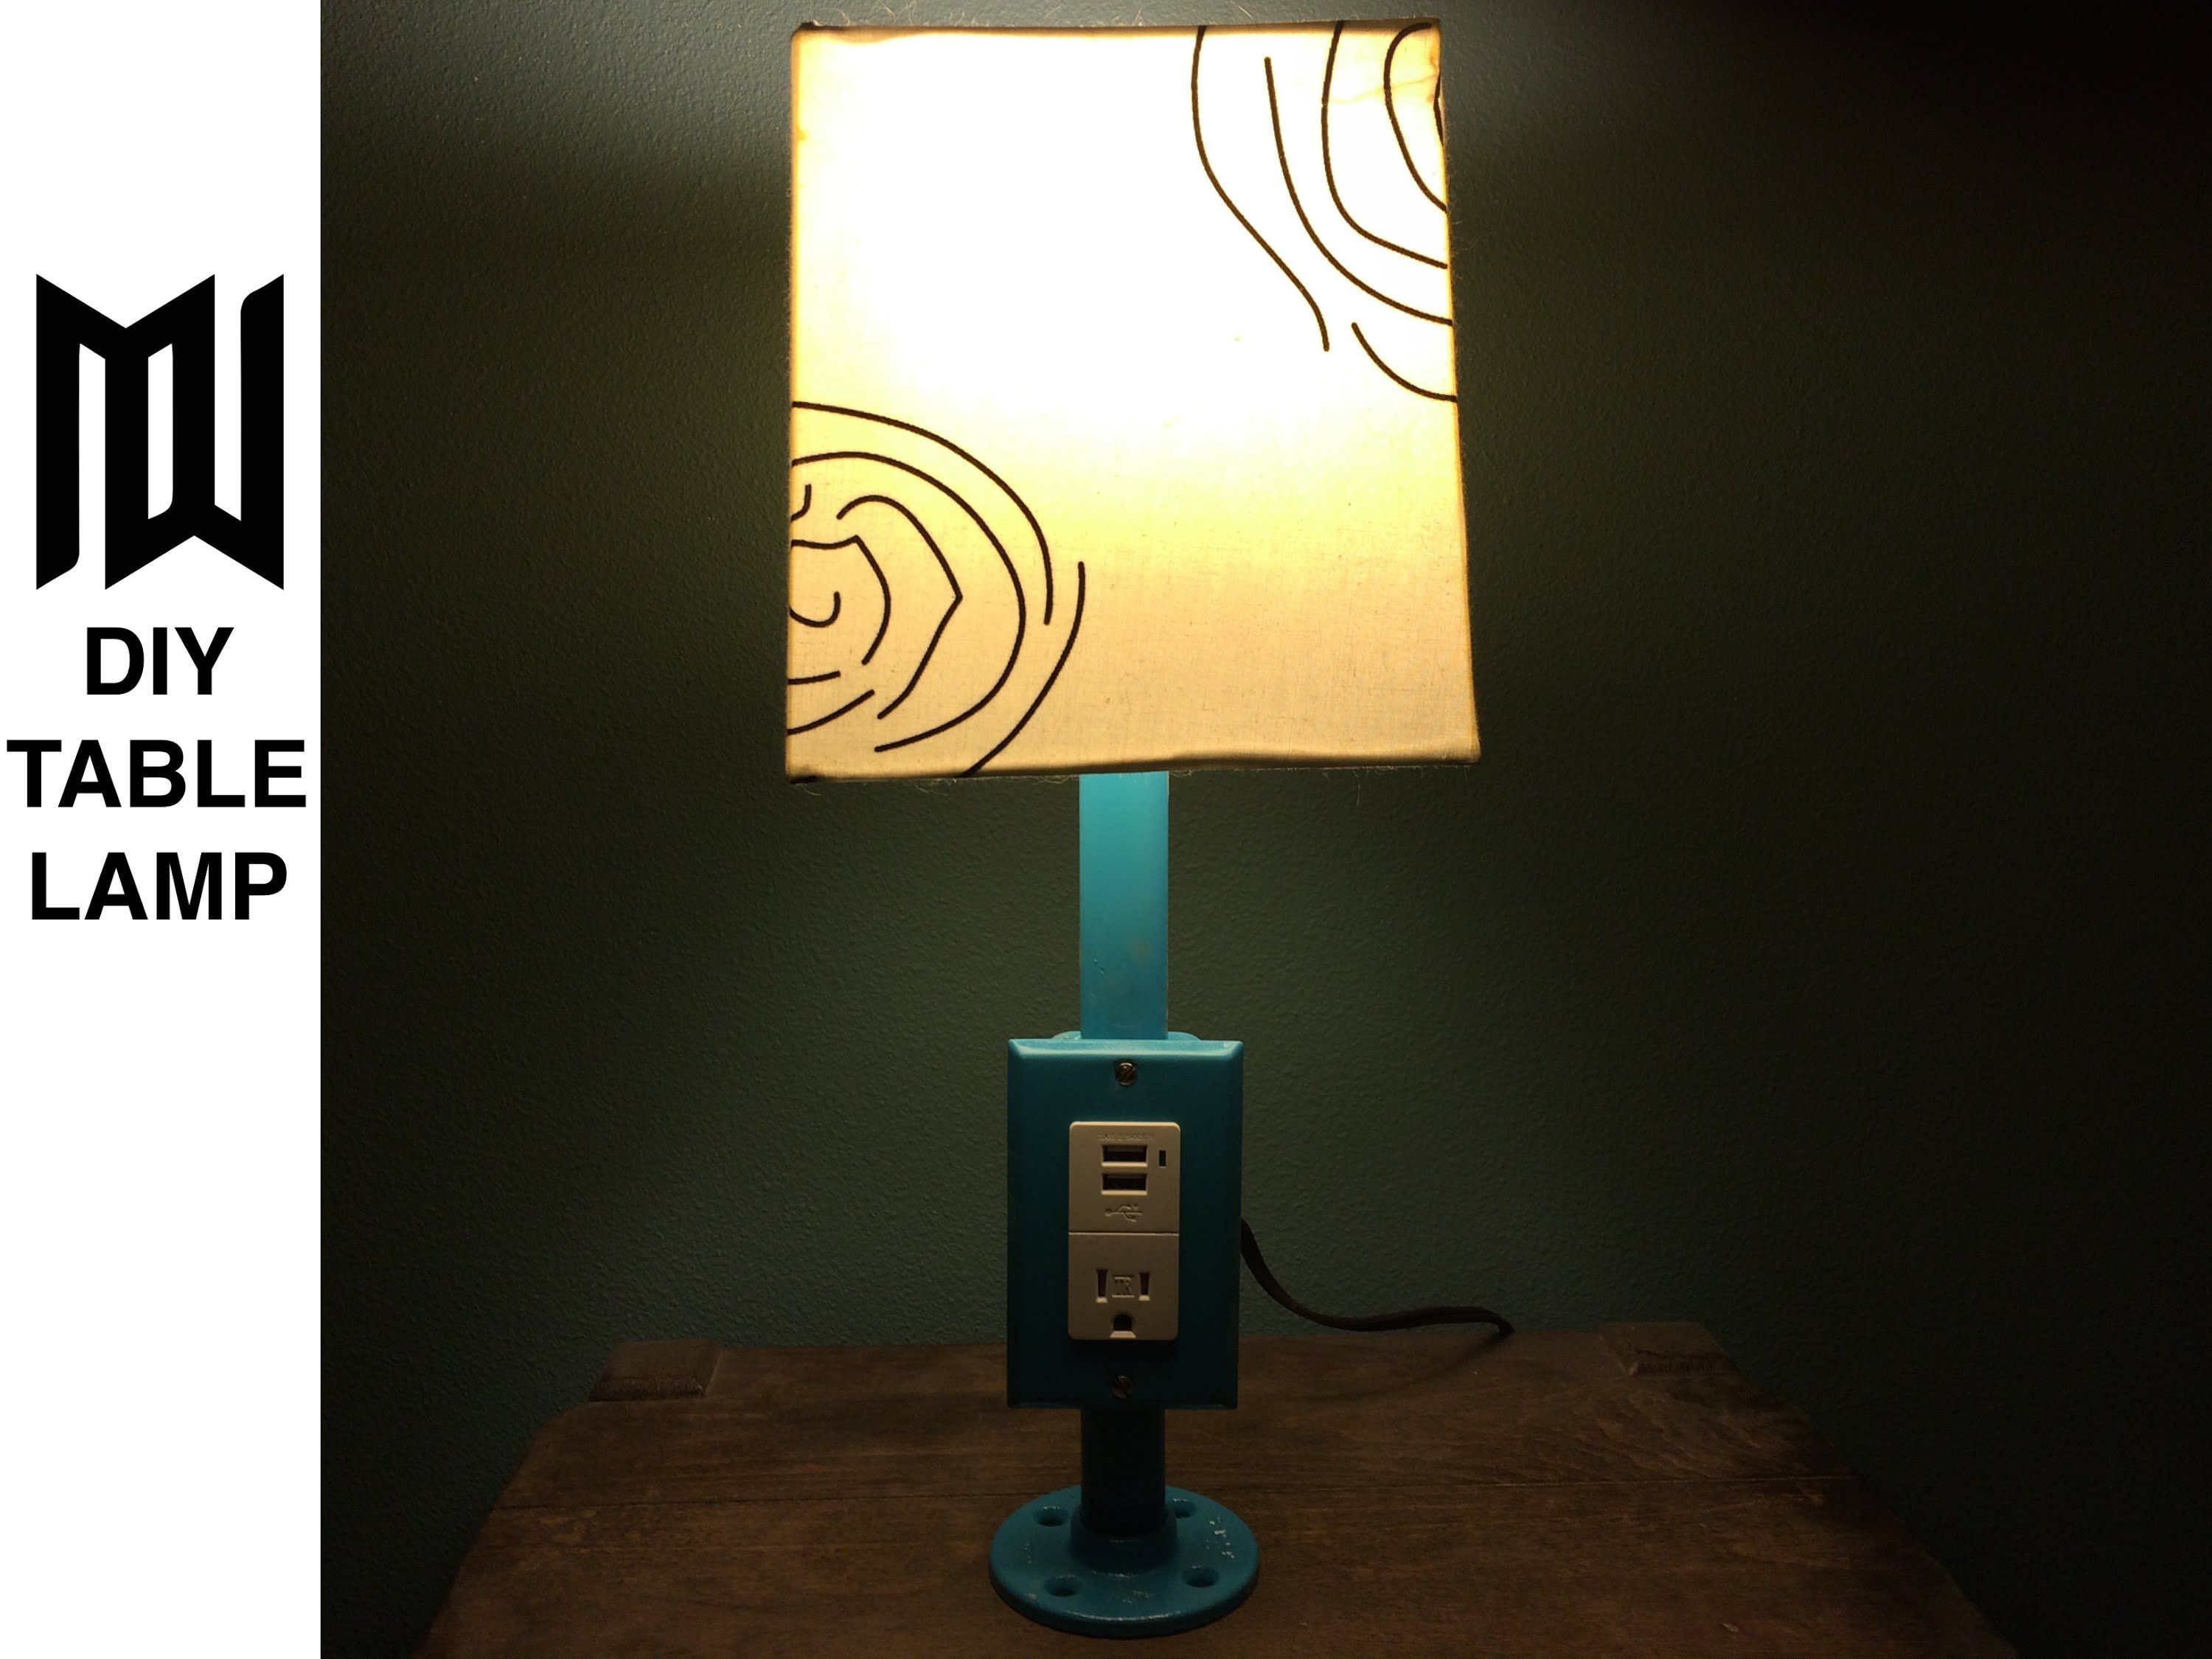 Make in a Minute Build an Easy DIY Outlet Lamp with USB